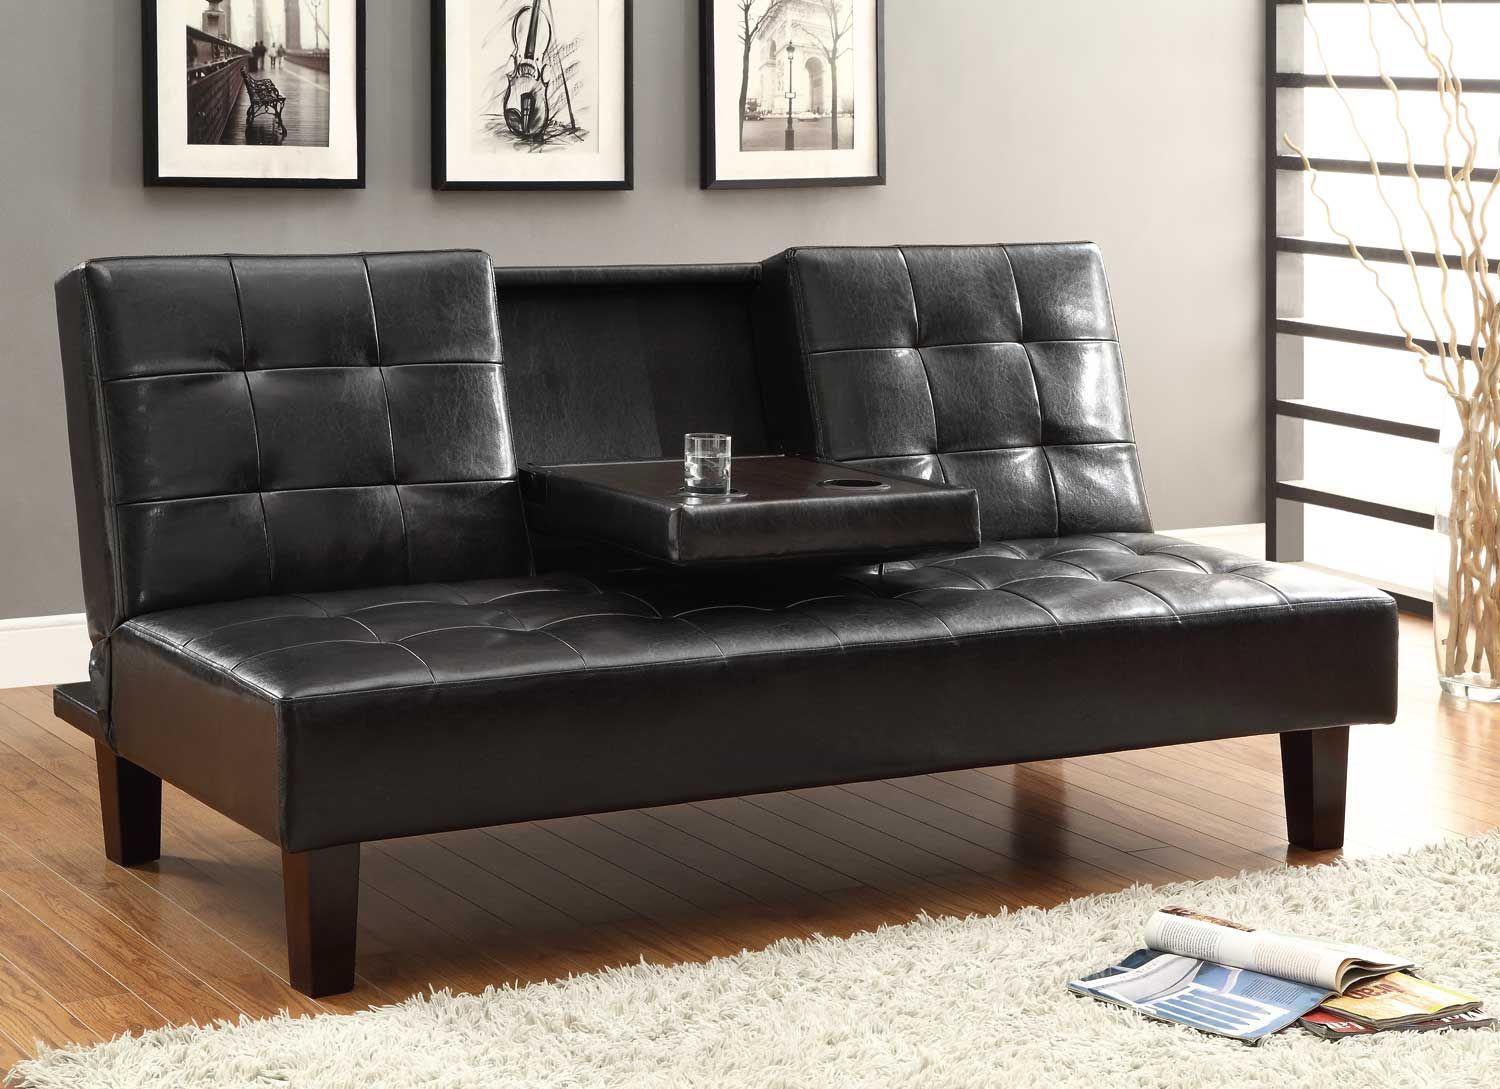 Click Clack Couch   Most comfortable sofa bed, Couch ...